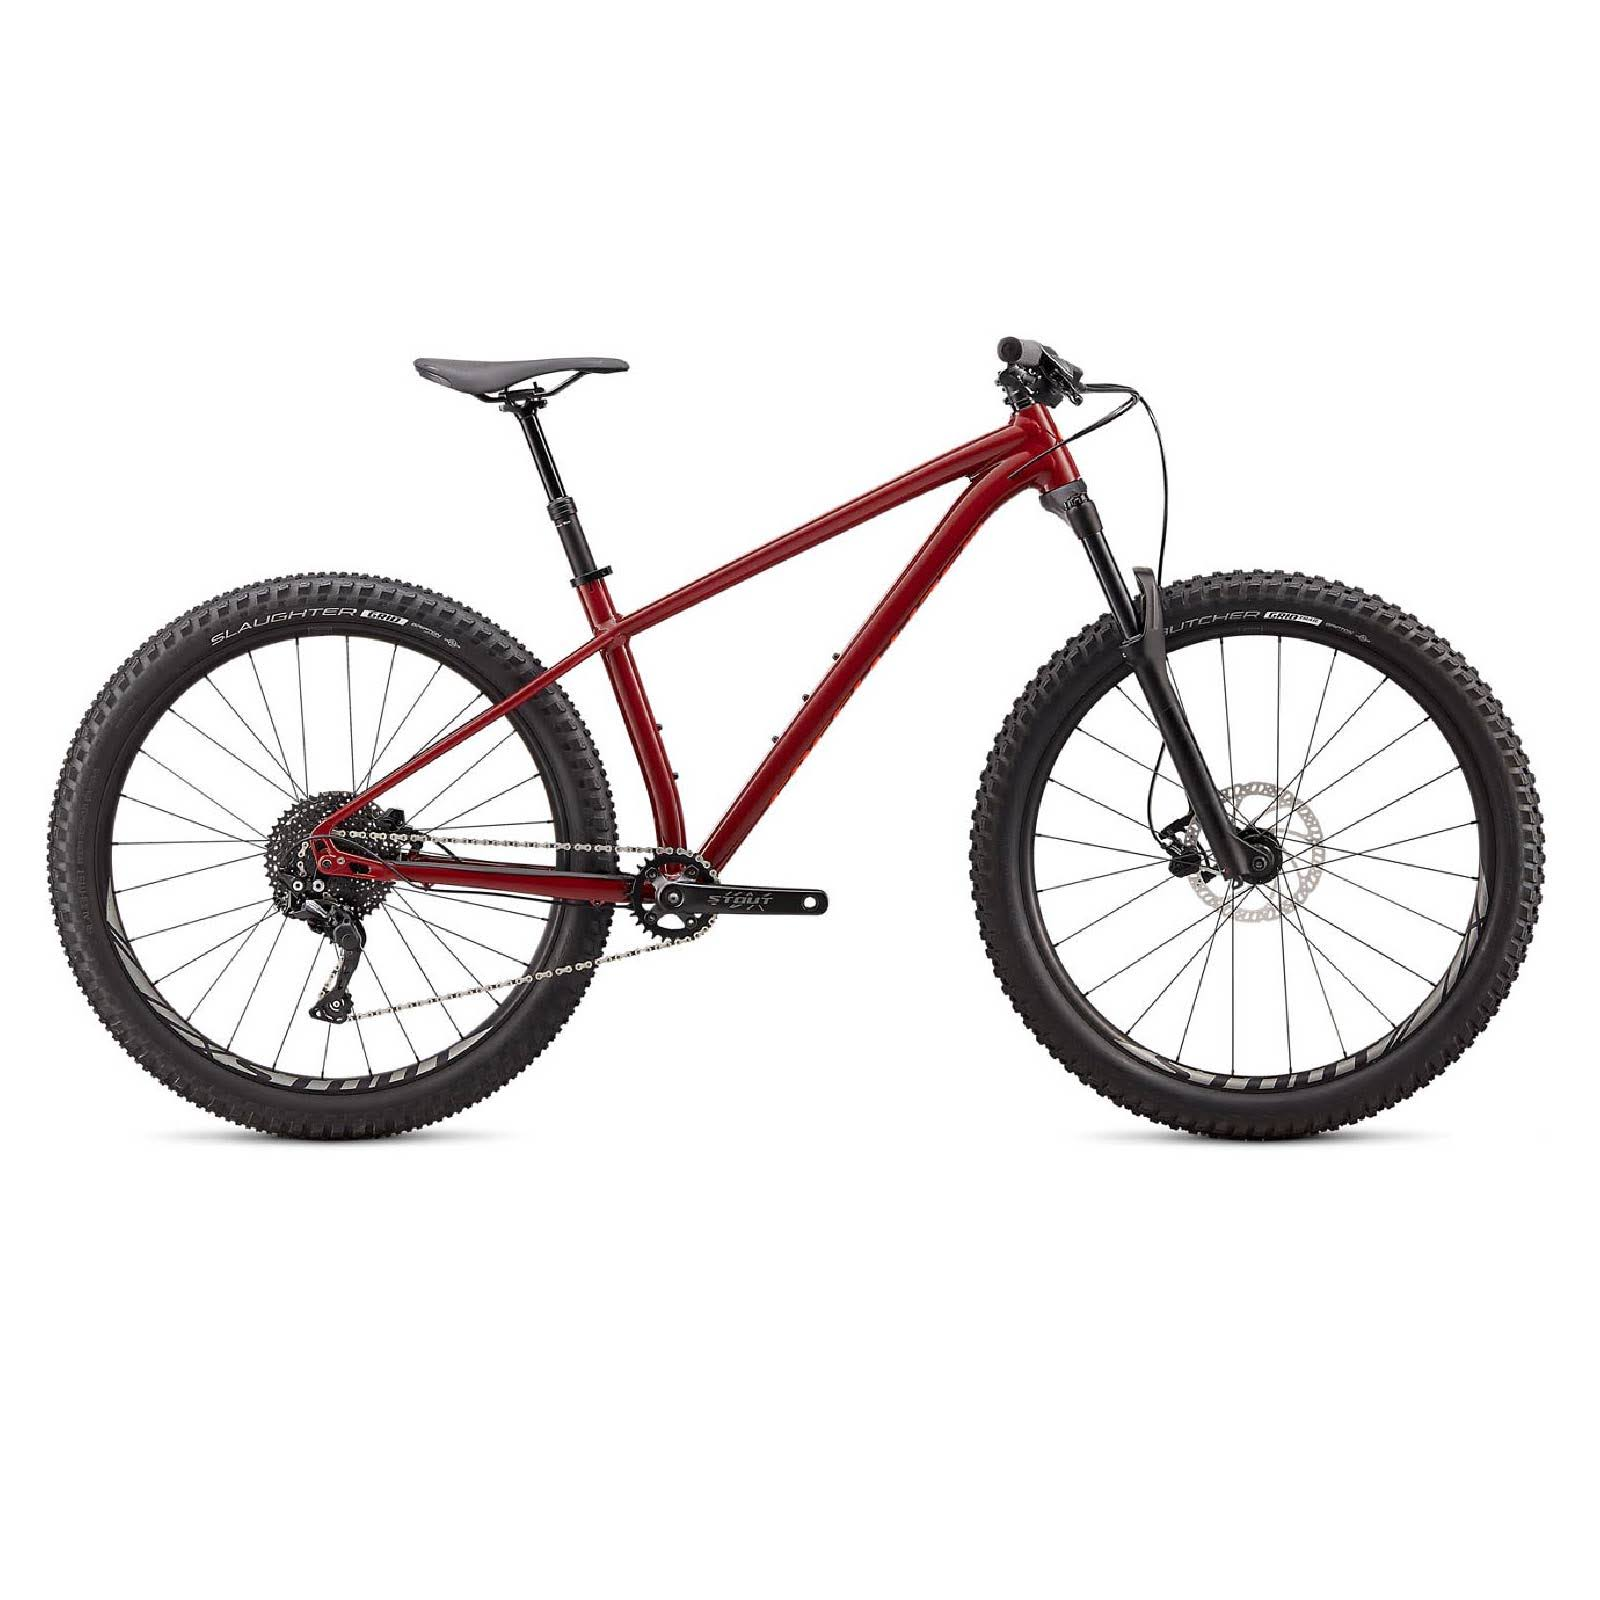 Specialized Fuse 27.5 2020 Hardtail Mountain Bike Red